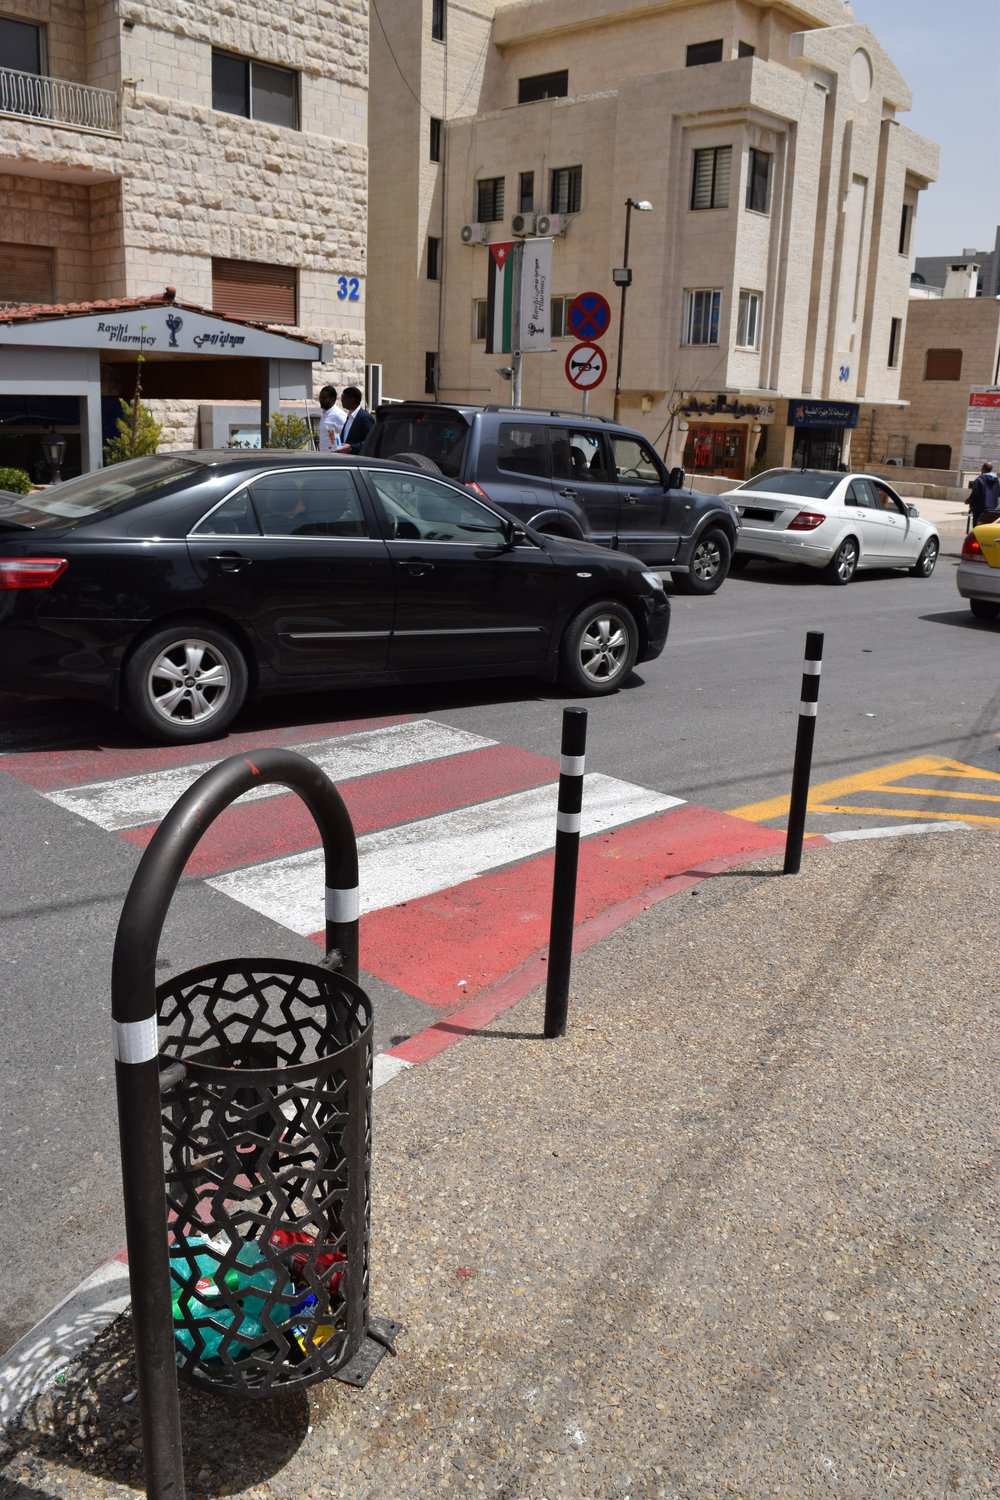 Low poles have been installed to prevent cars from parking on the sidewalk; and the street has been provided with new waste bins.